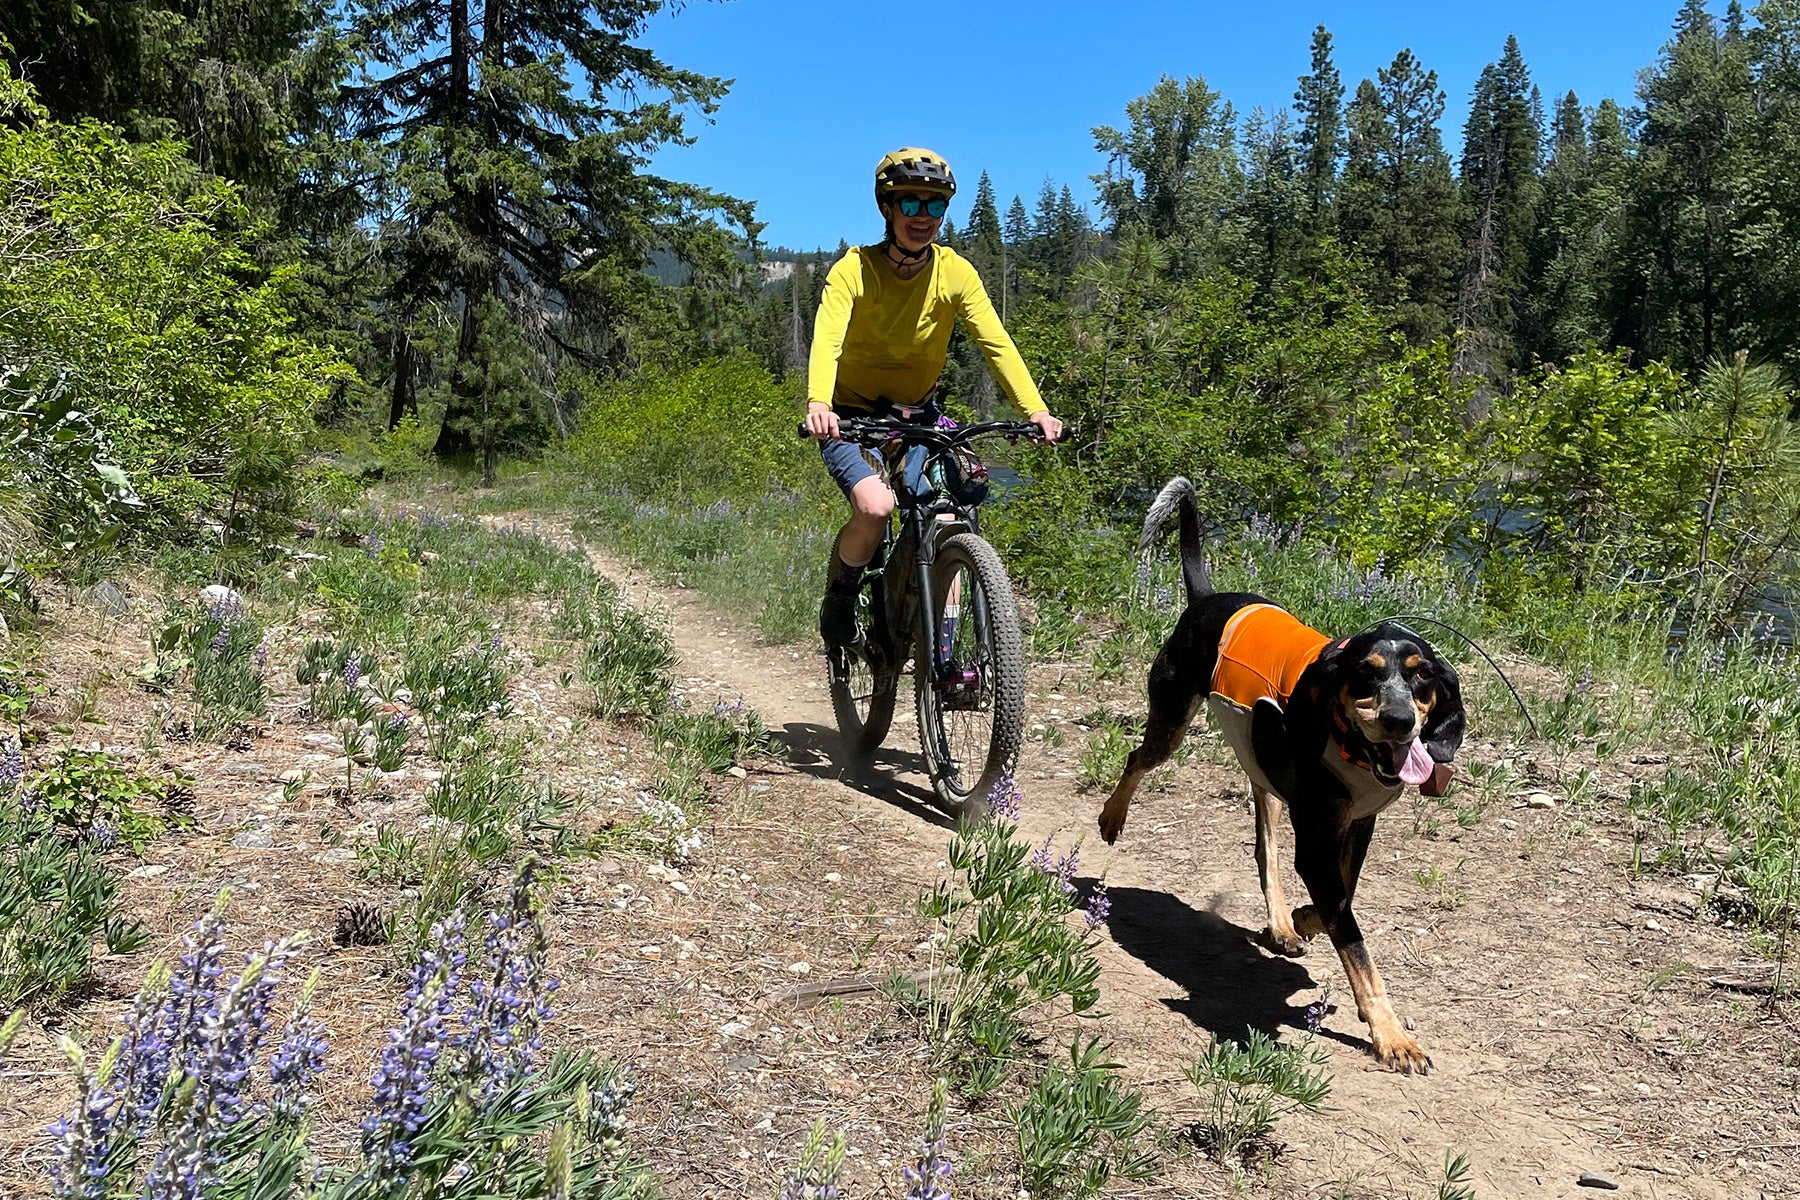 Laura and dog Colt mountain biking together